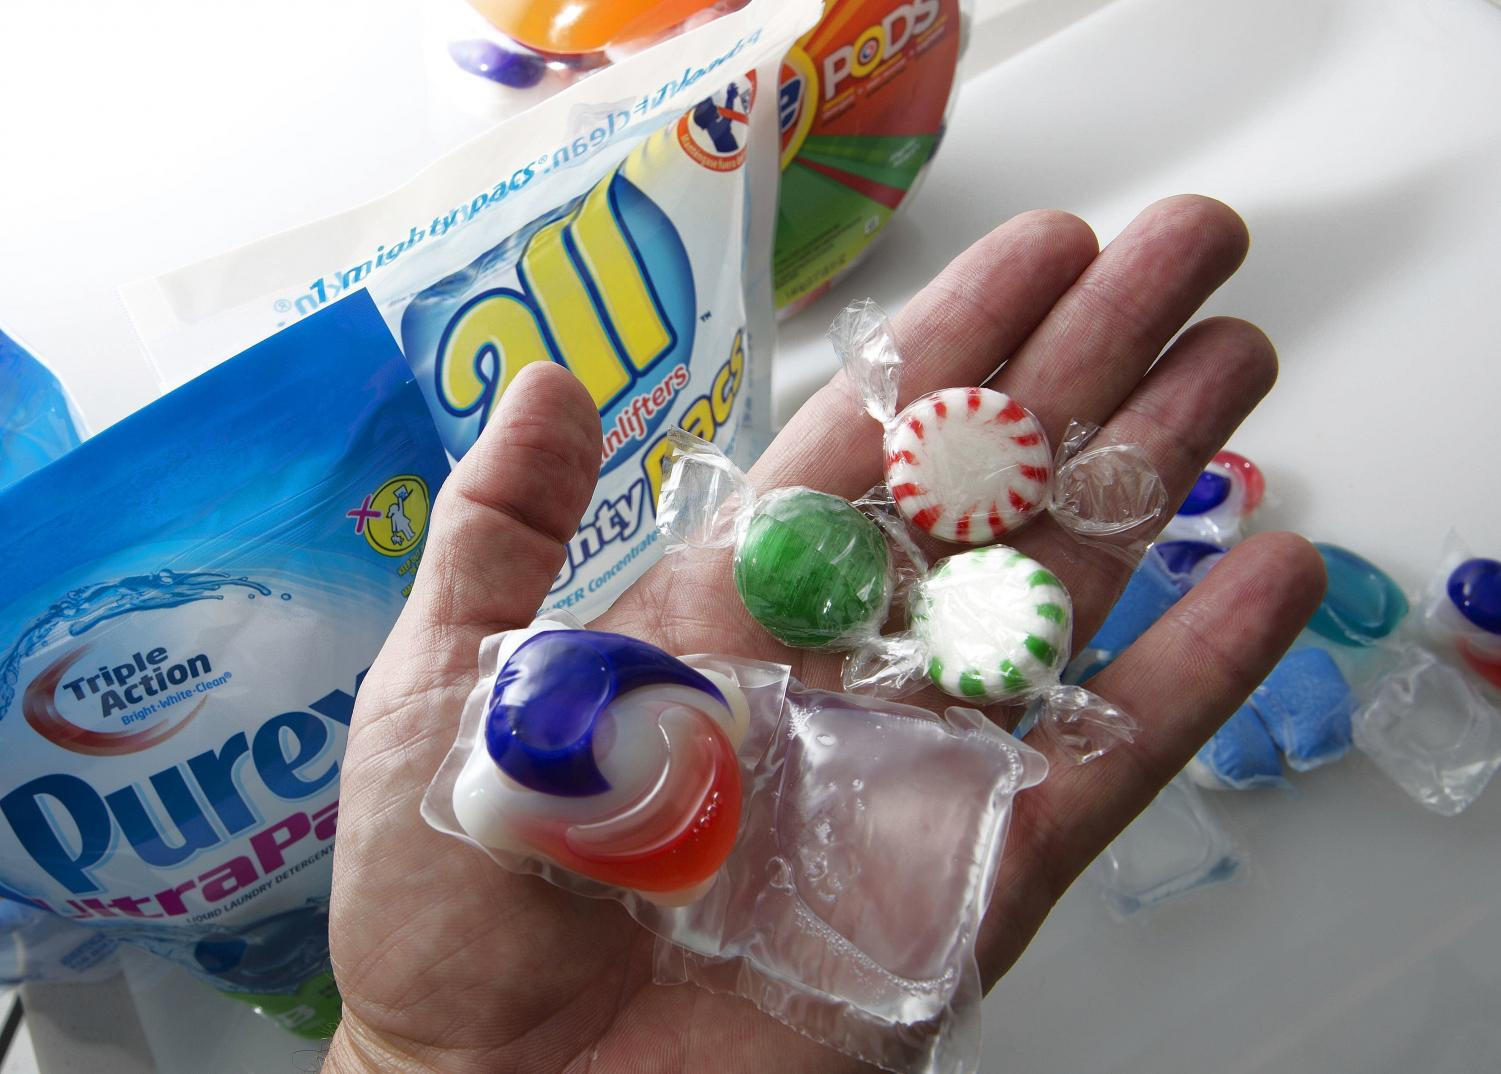 The Tide Pod packets are NOT food, no matter how tasty they look. (Tom Burton/Orlando Sentinel/MCT)